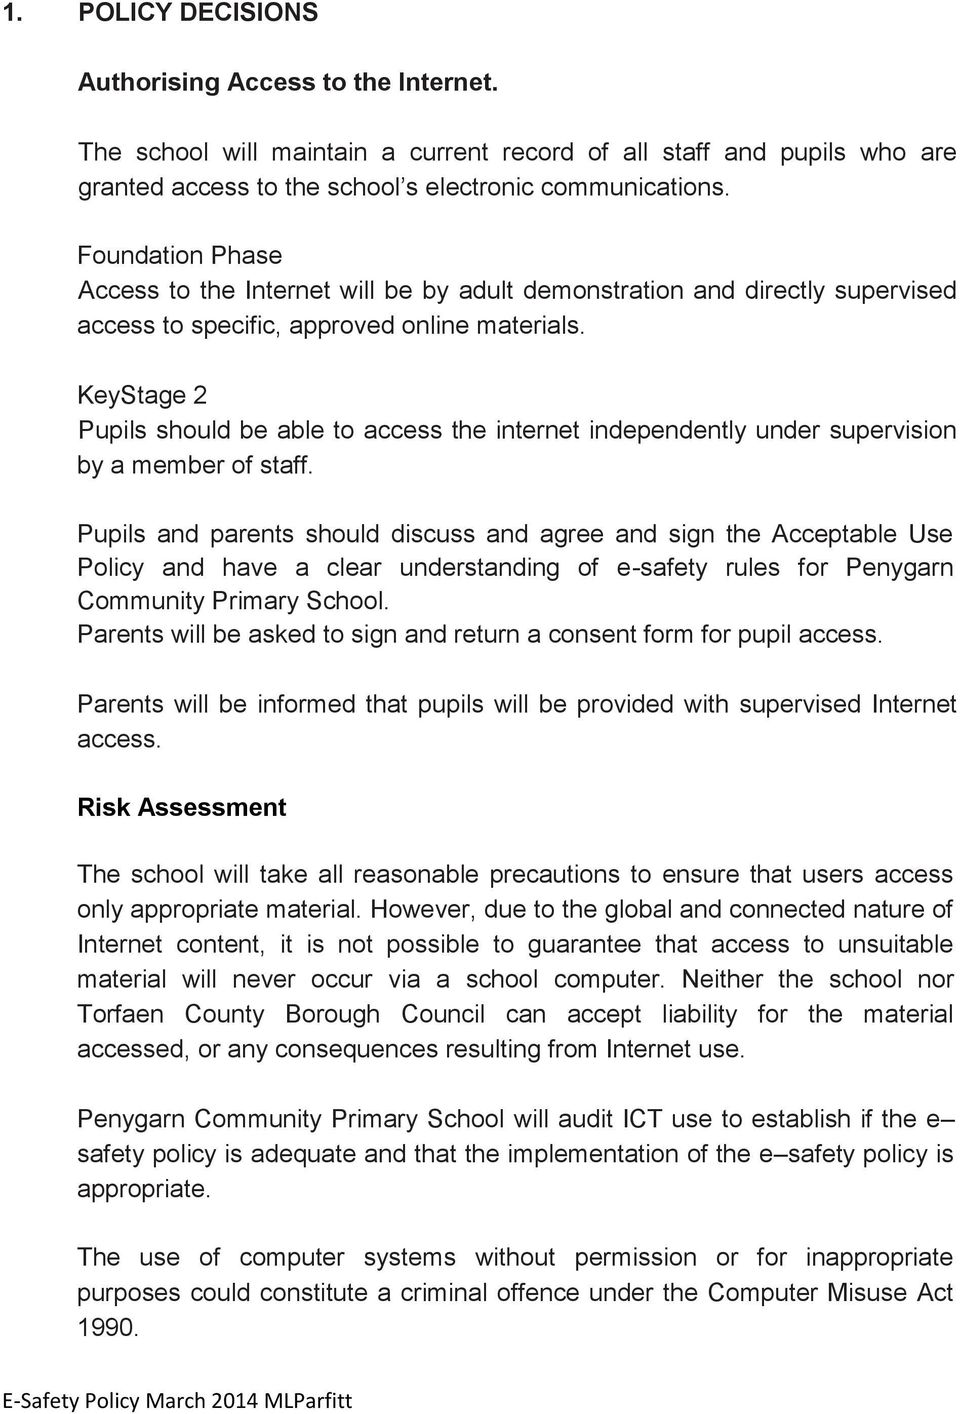 KeyStage 2 Pupils should be able to access the internet independently under supervision by a member of staff.